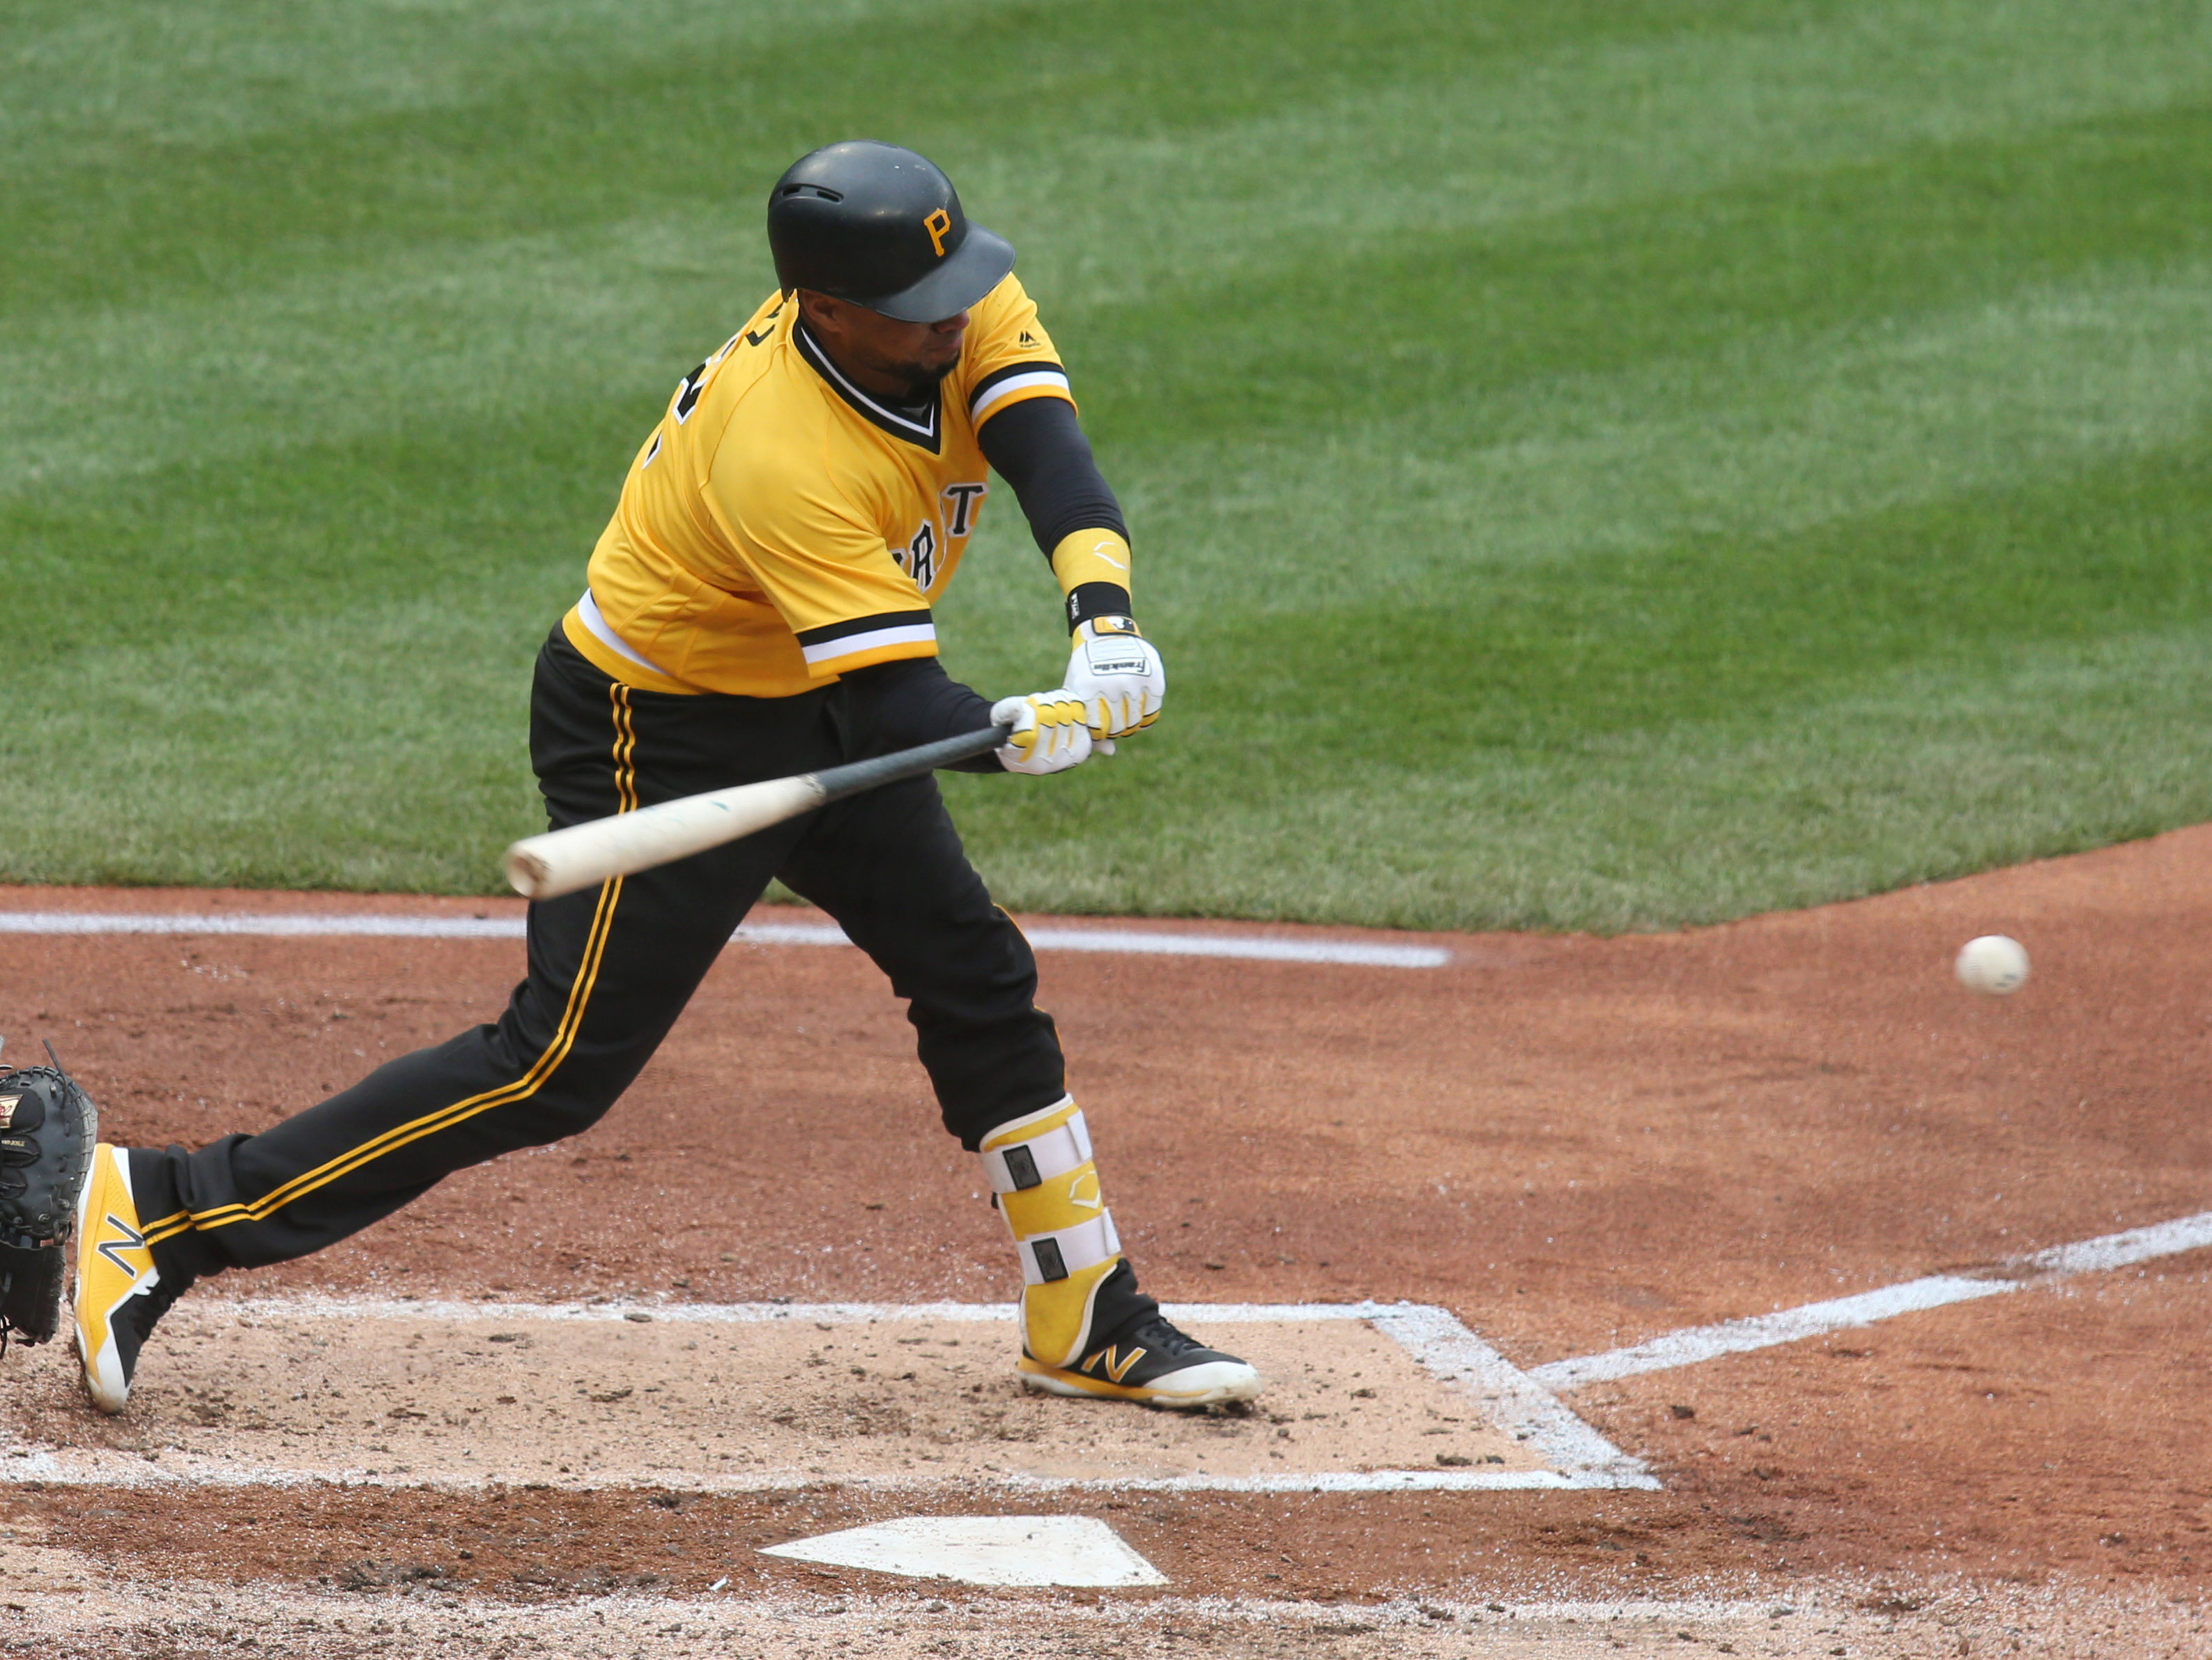 Does Elias Diaz need more playing time?